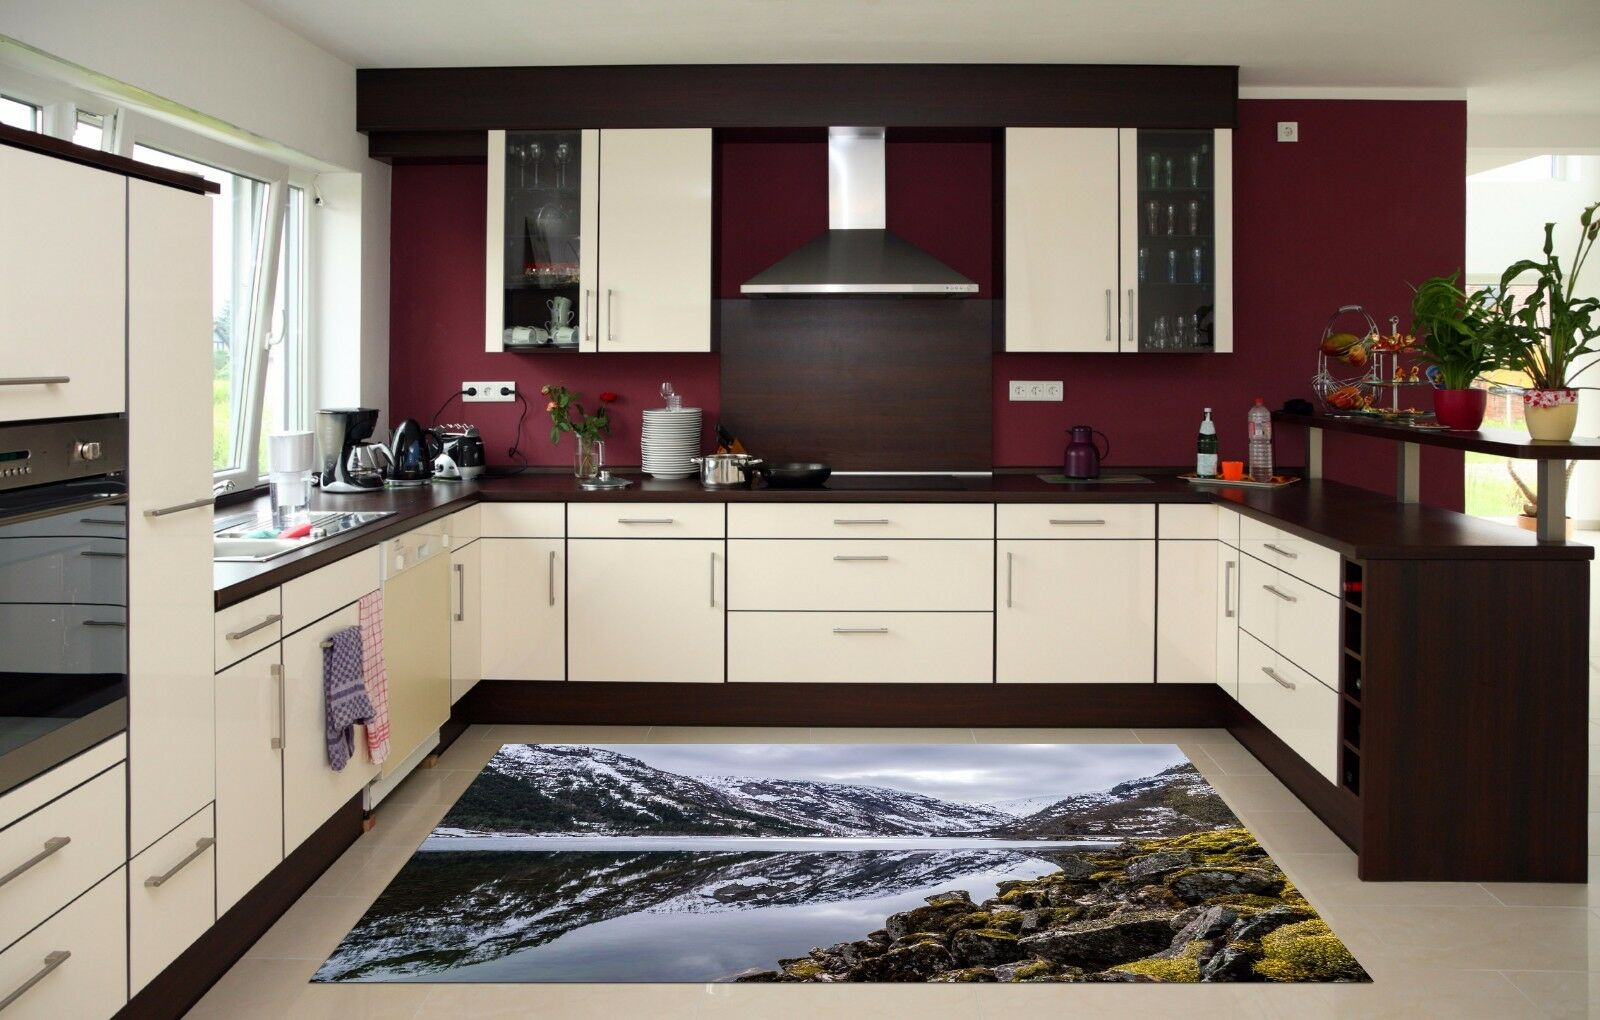 3D Mountain Lake 8 Kitchen Mat Floor Murals Wall Print Wall AJ WALLPAPER AU Kyra